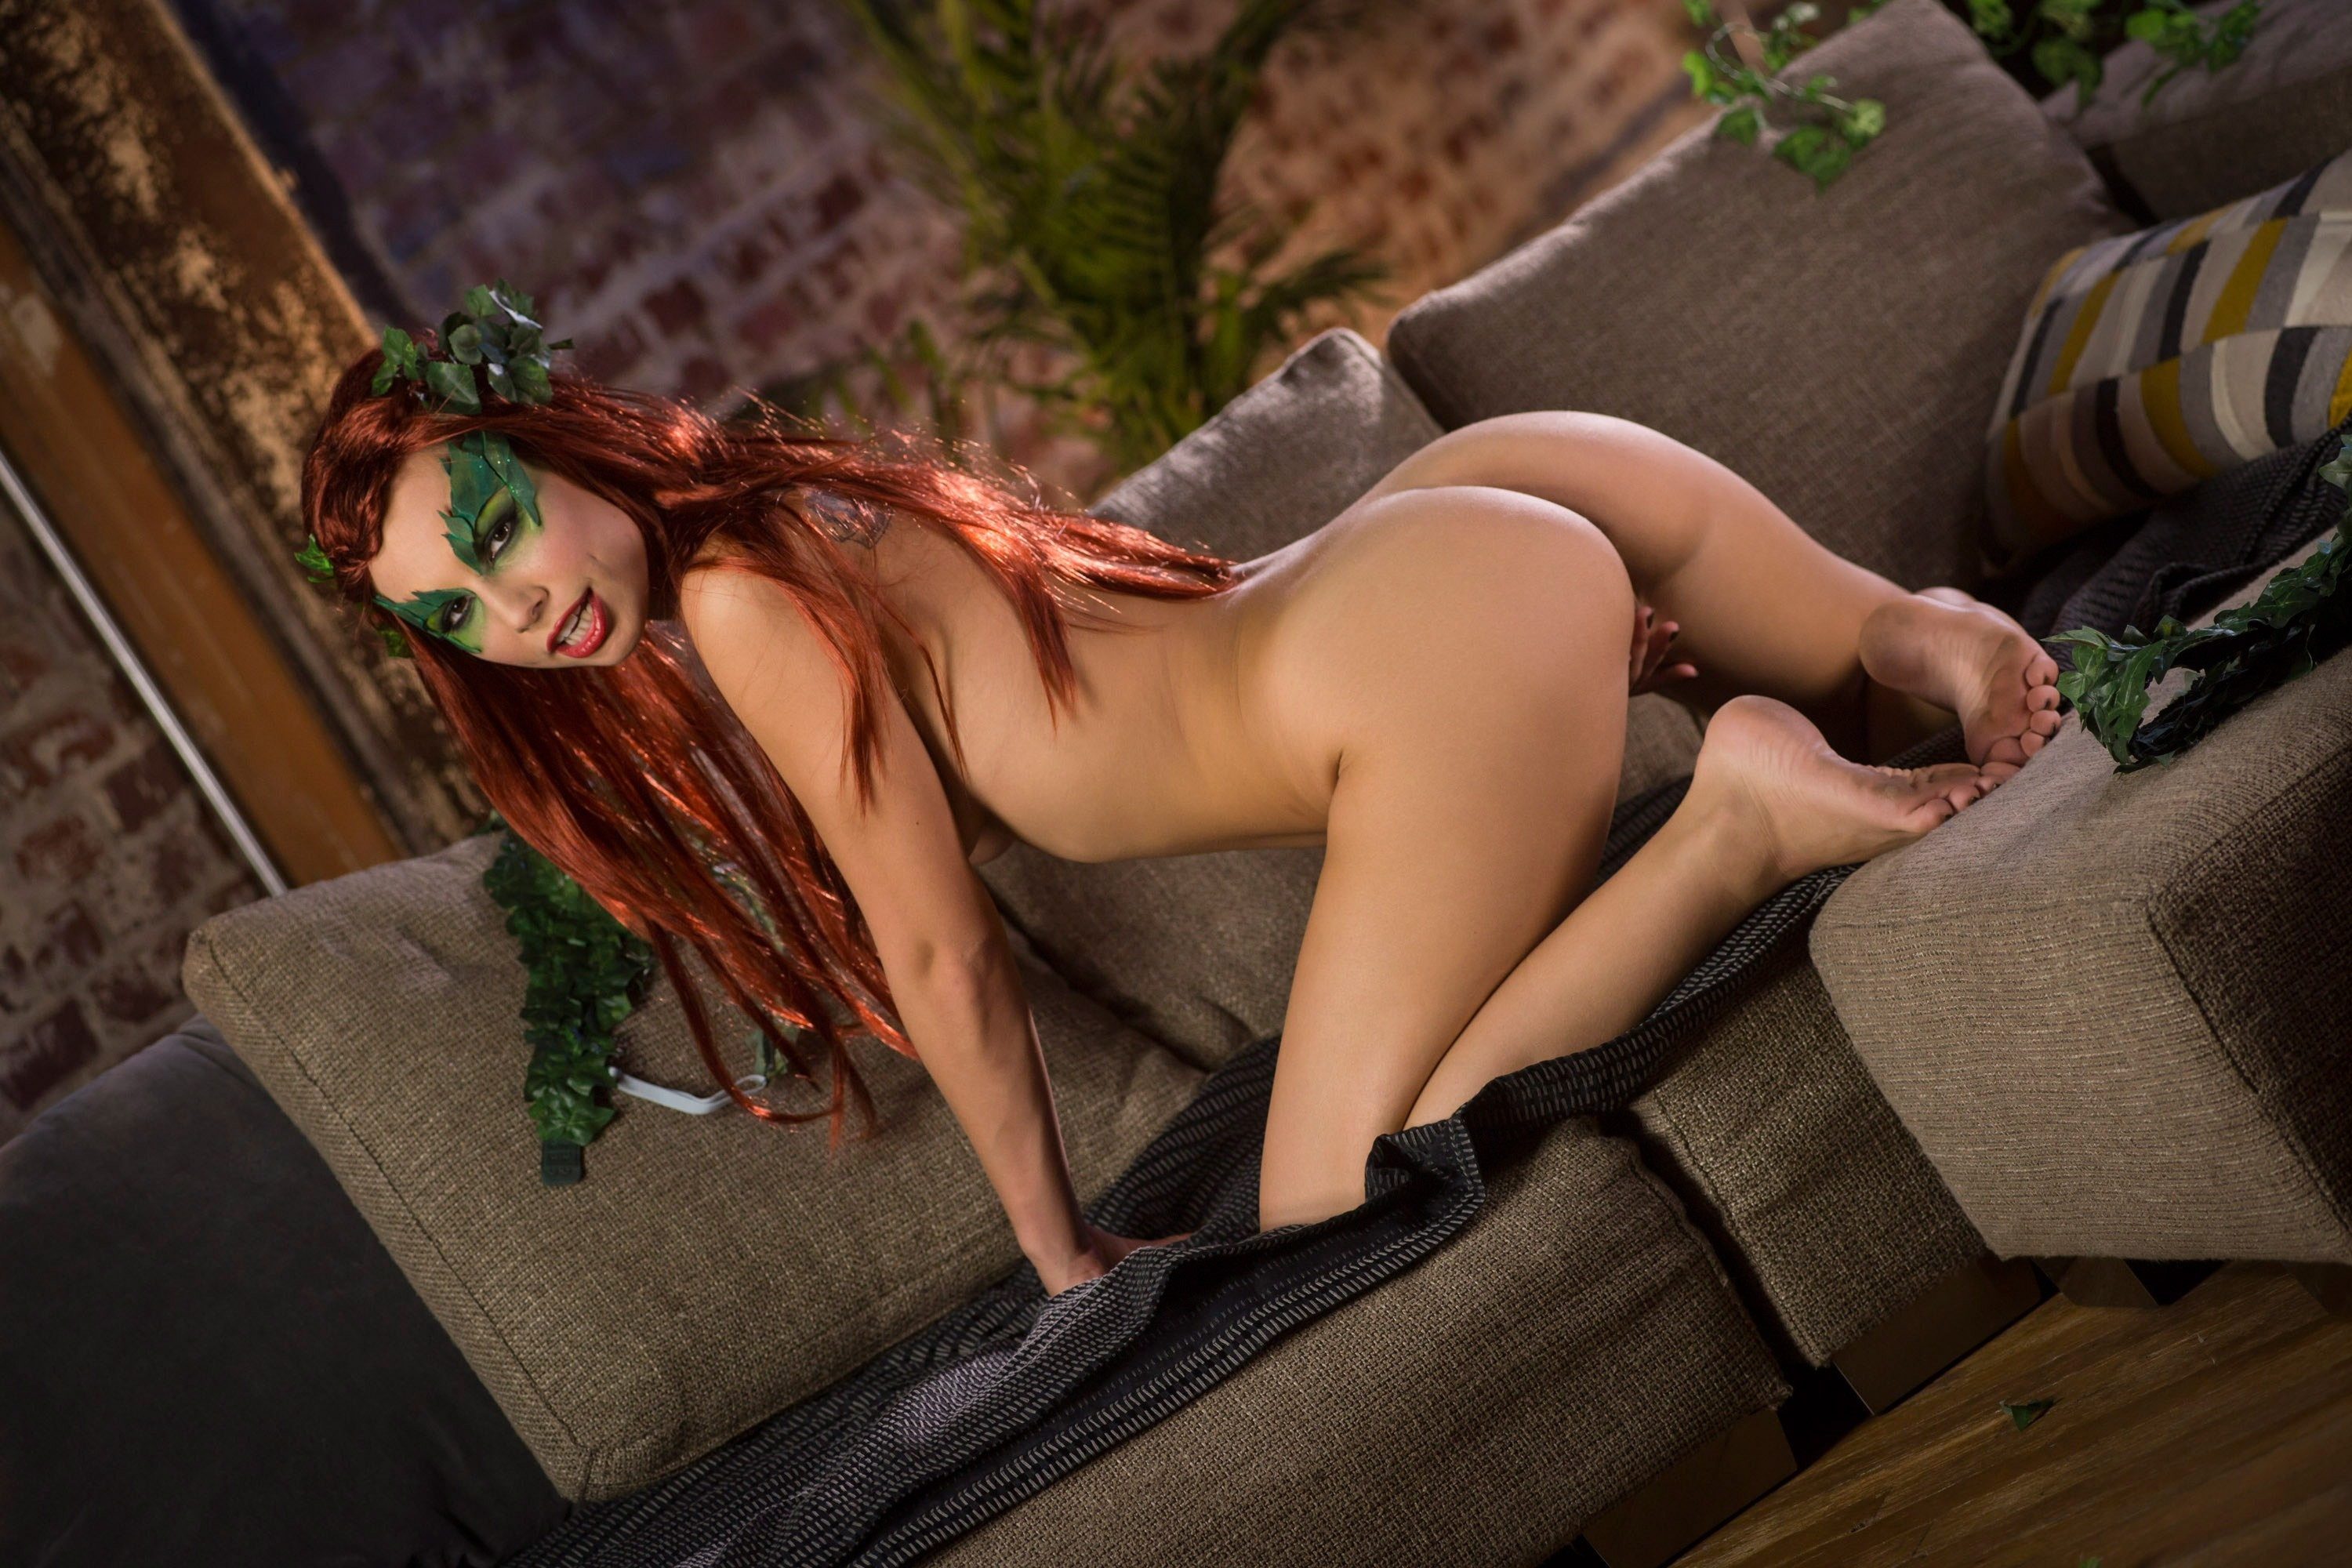 Poison ivy nude sex xxx know one